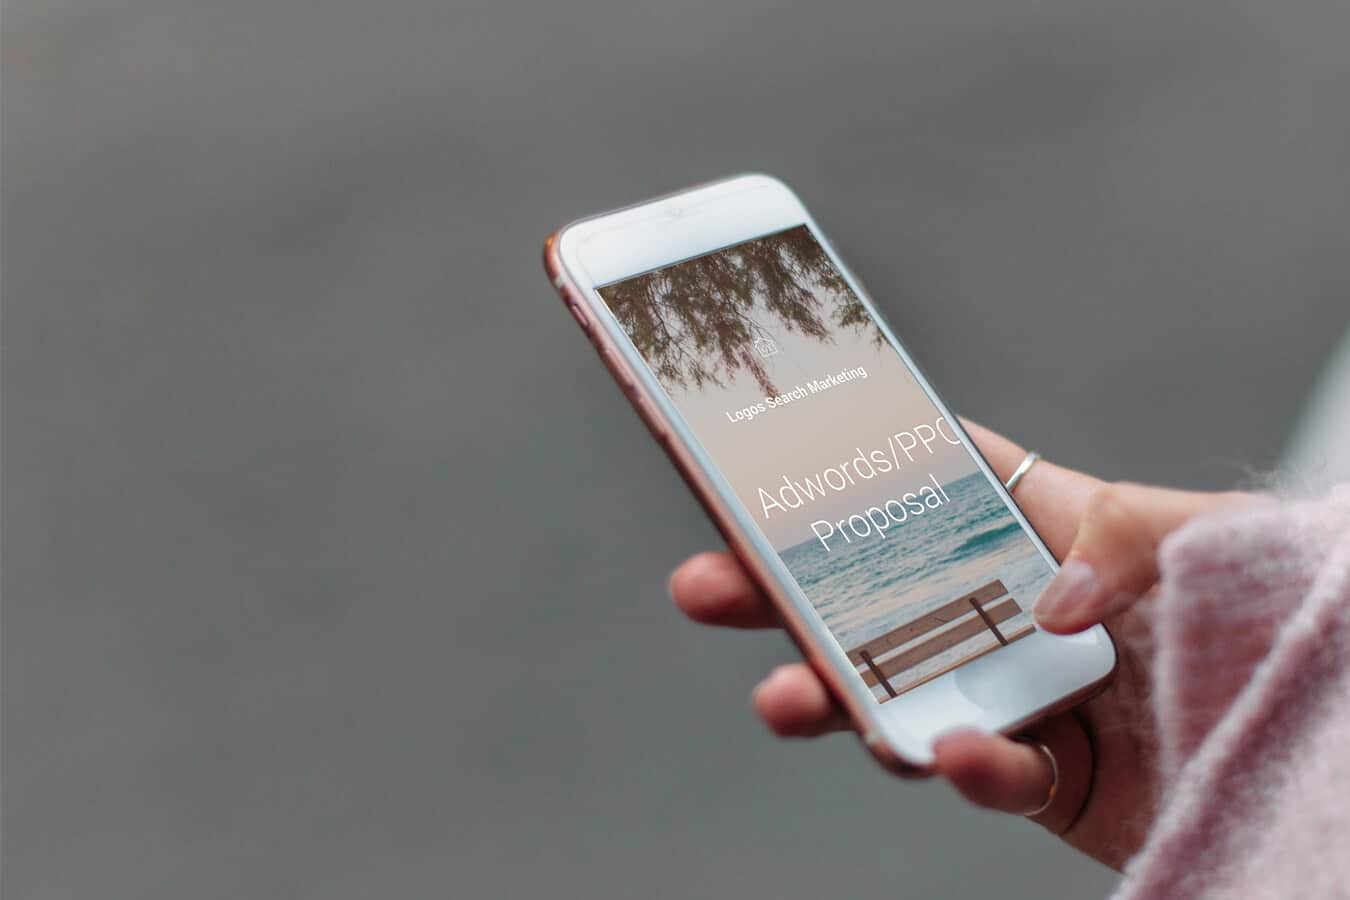 iphone-adwords-PPC-proposal